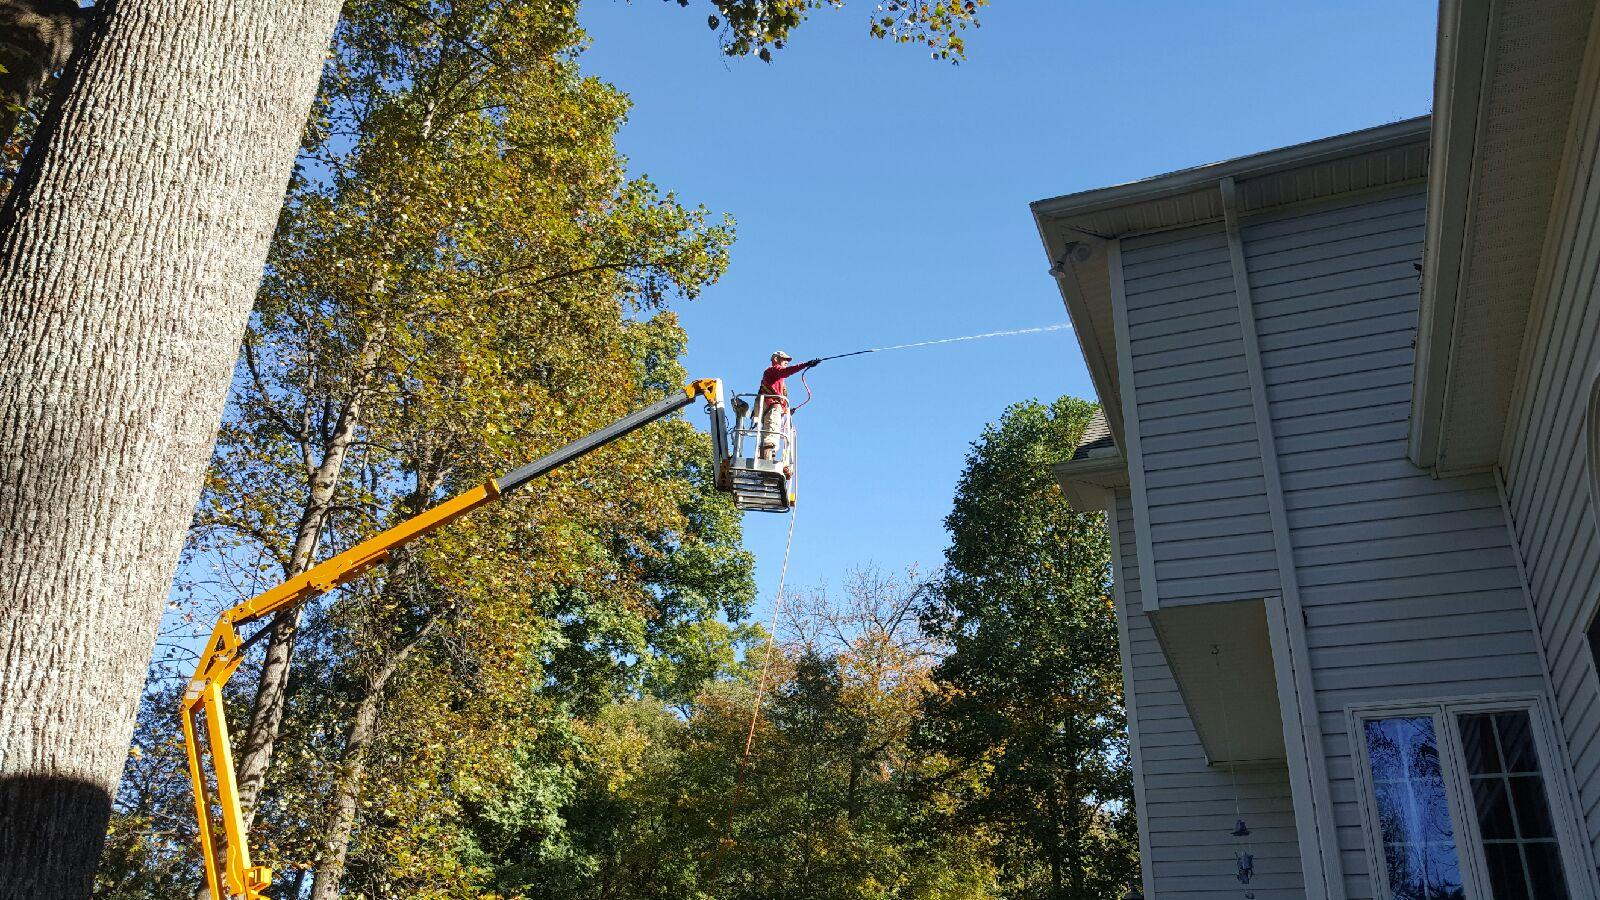 Boom Lift | House Washing Service in Greencastle PA